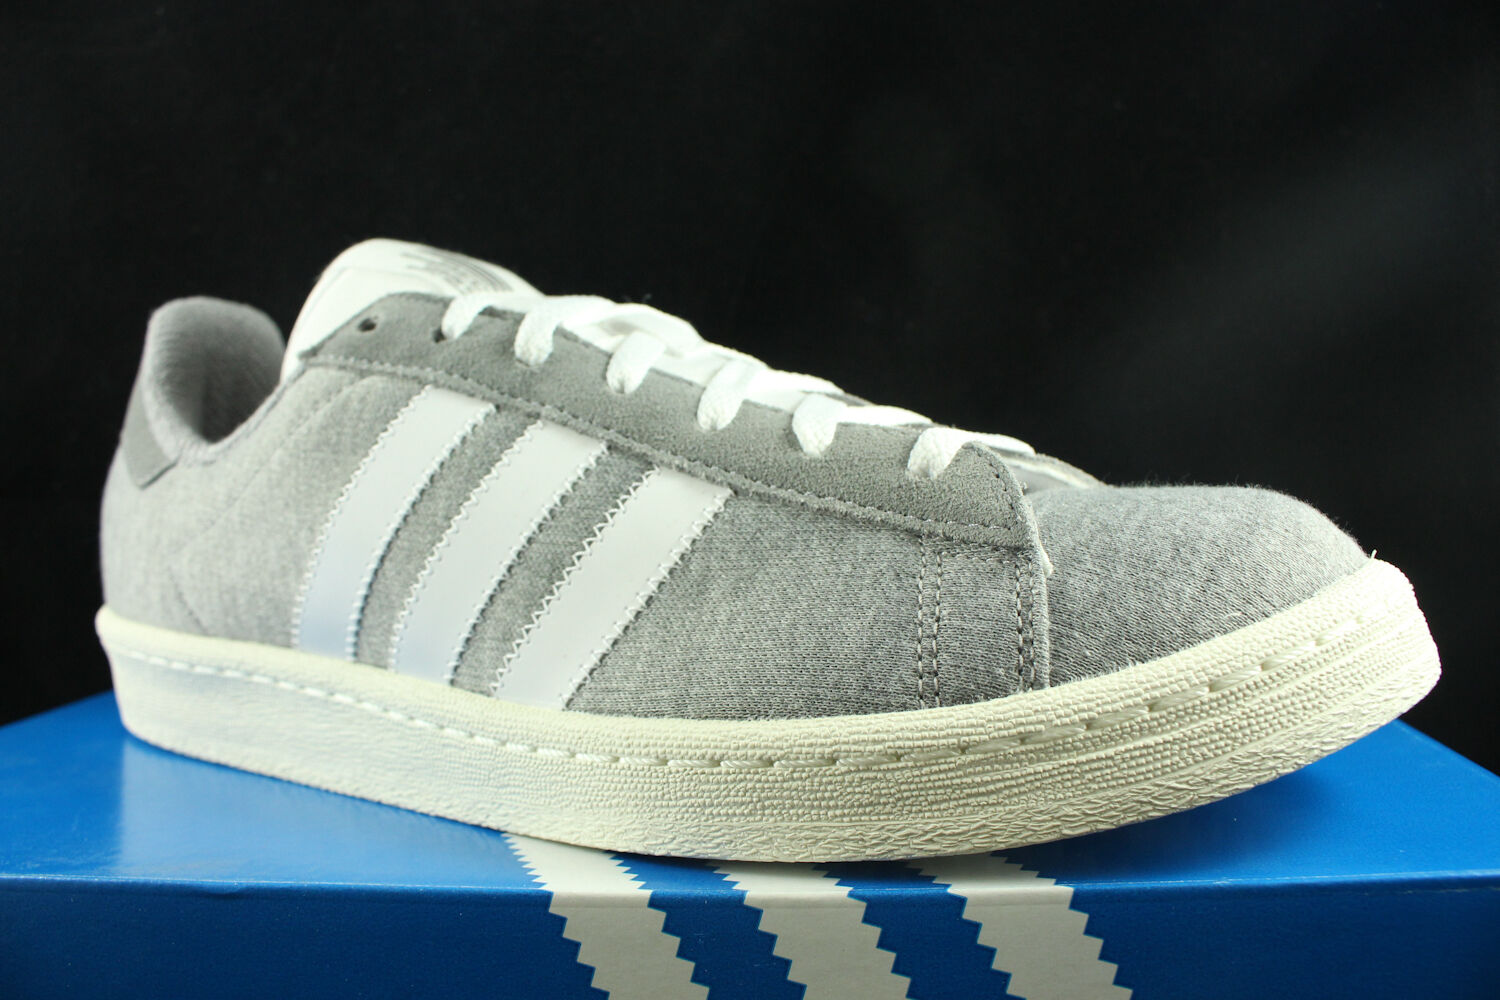 ADIDAS CAMPUS 80'S BW BEDWIN AND THE HEART BREAKERS GREY WHITE S75675 SZ 11.5 Scarpe classiche da uomo